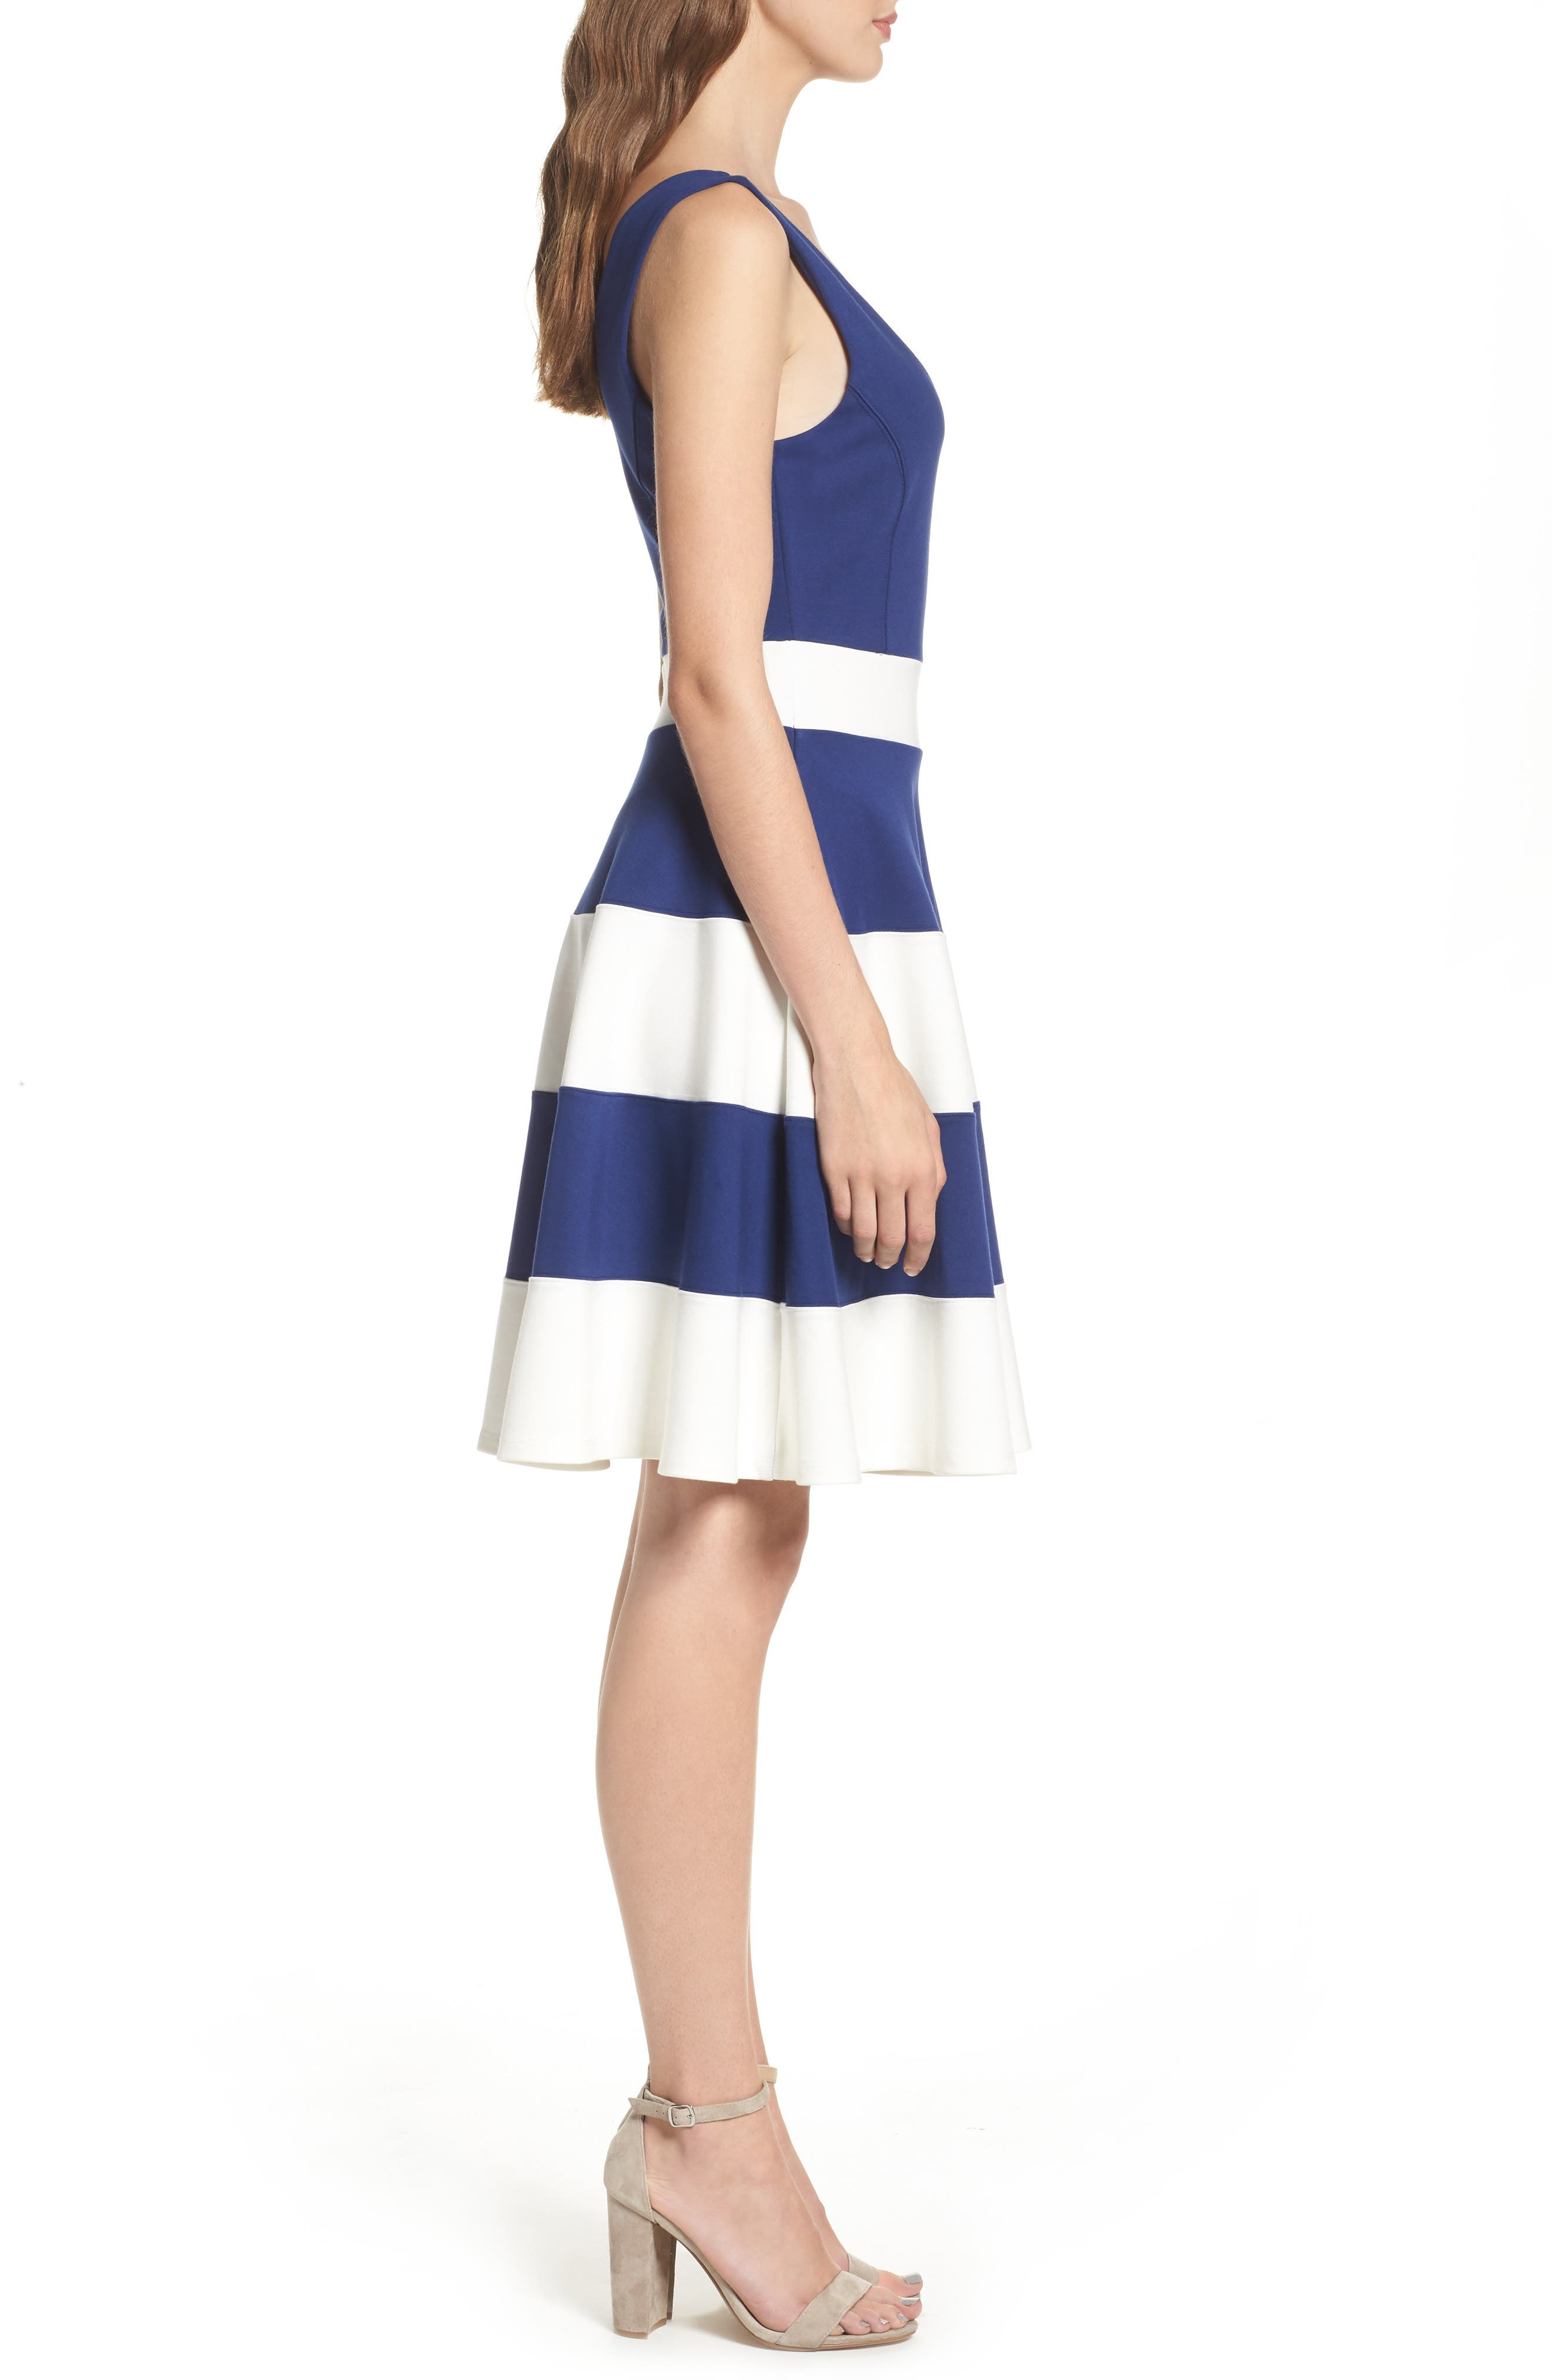 Joice Sleeveless Fit & Flare Dress,                             Alternate thumbnail 4, color,                             Navy/ White